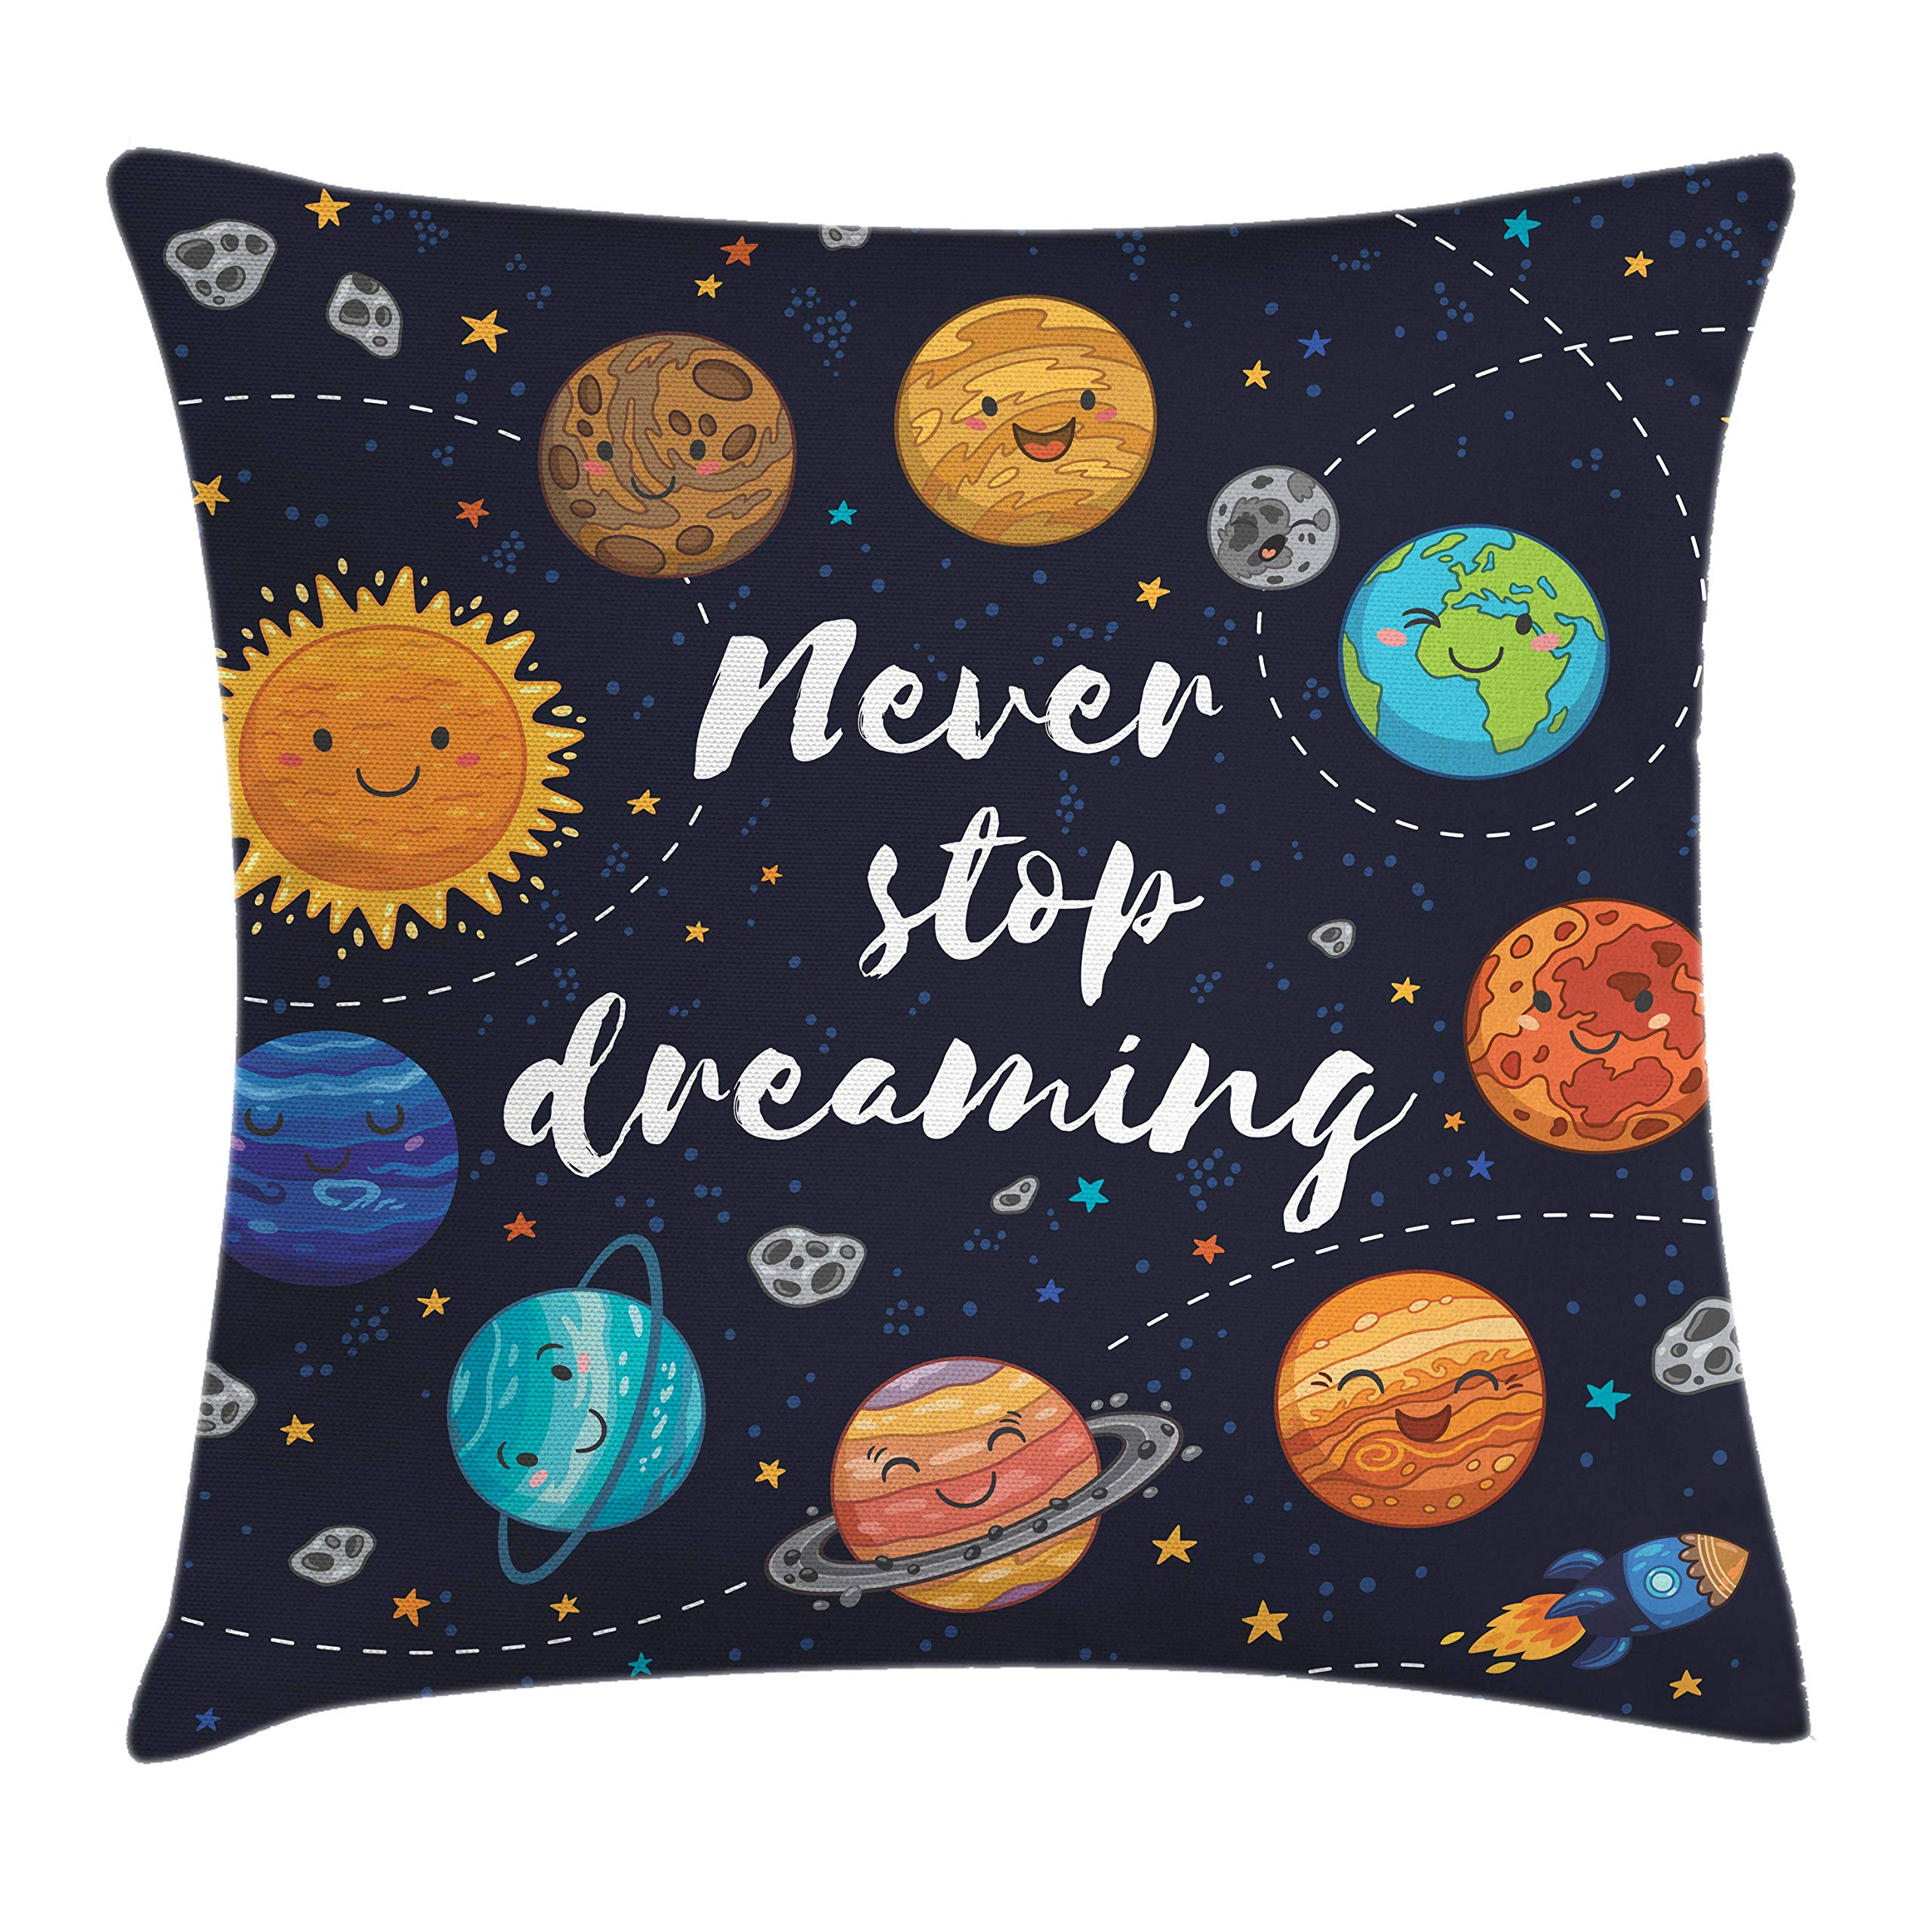 Ambesonne Quotes Decor Throw Pillow Cushion Cover, Cute Outer Space Planets and Star Cluster Solar Moon and Comets Sun Cosmos Image, Decorative Square Accent Pillow Case, 16 X 16 Inches, Multi